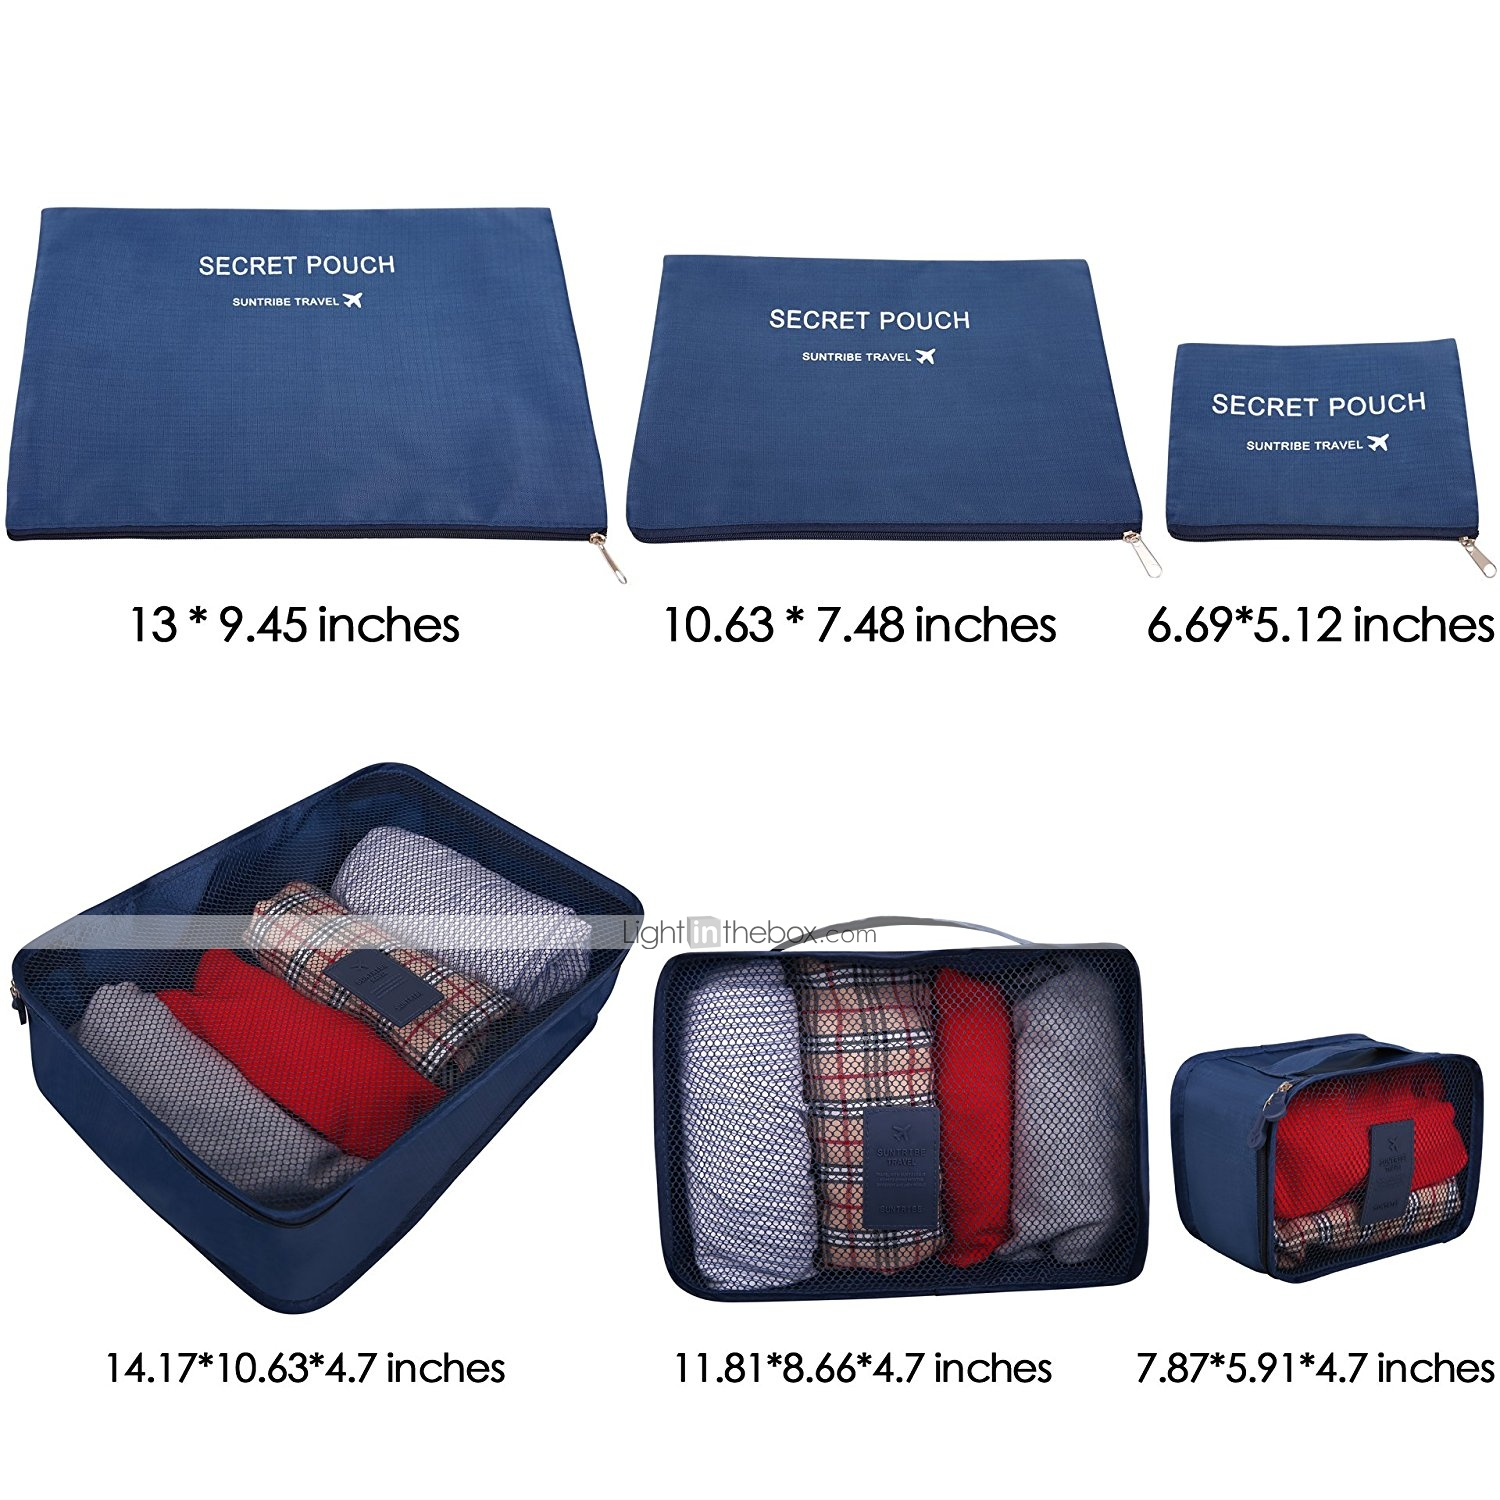 6 Sets Travel Bag Luggage Organizer Packing The In 1 Secret Pouch Organiser Bgo 15 Photos